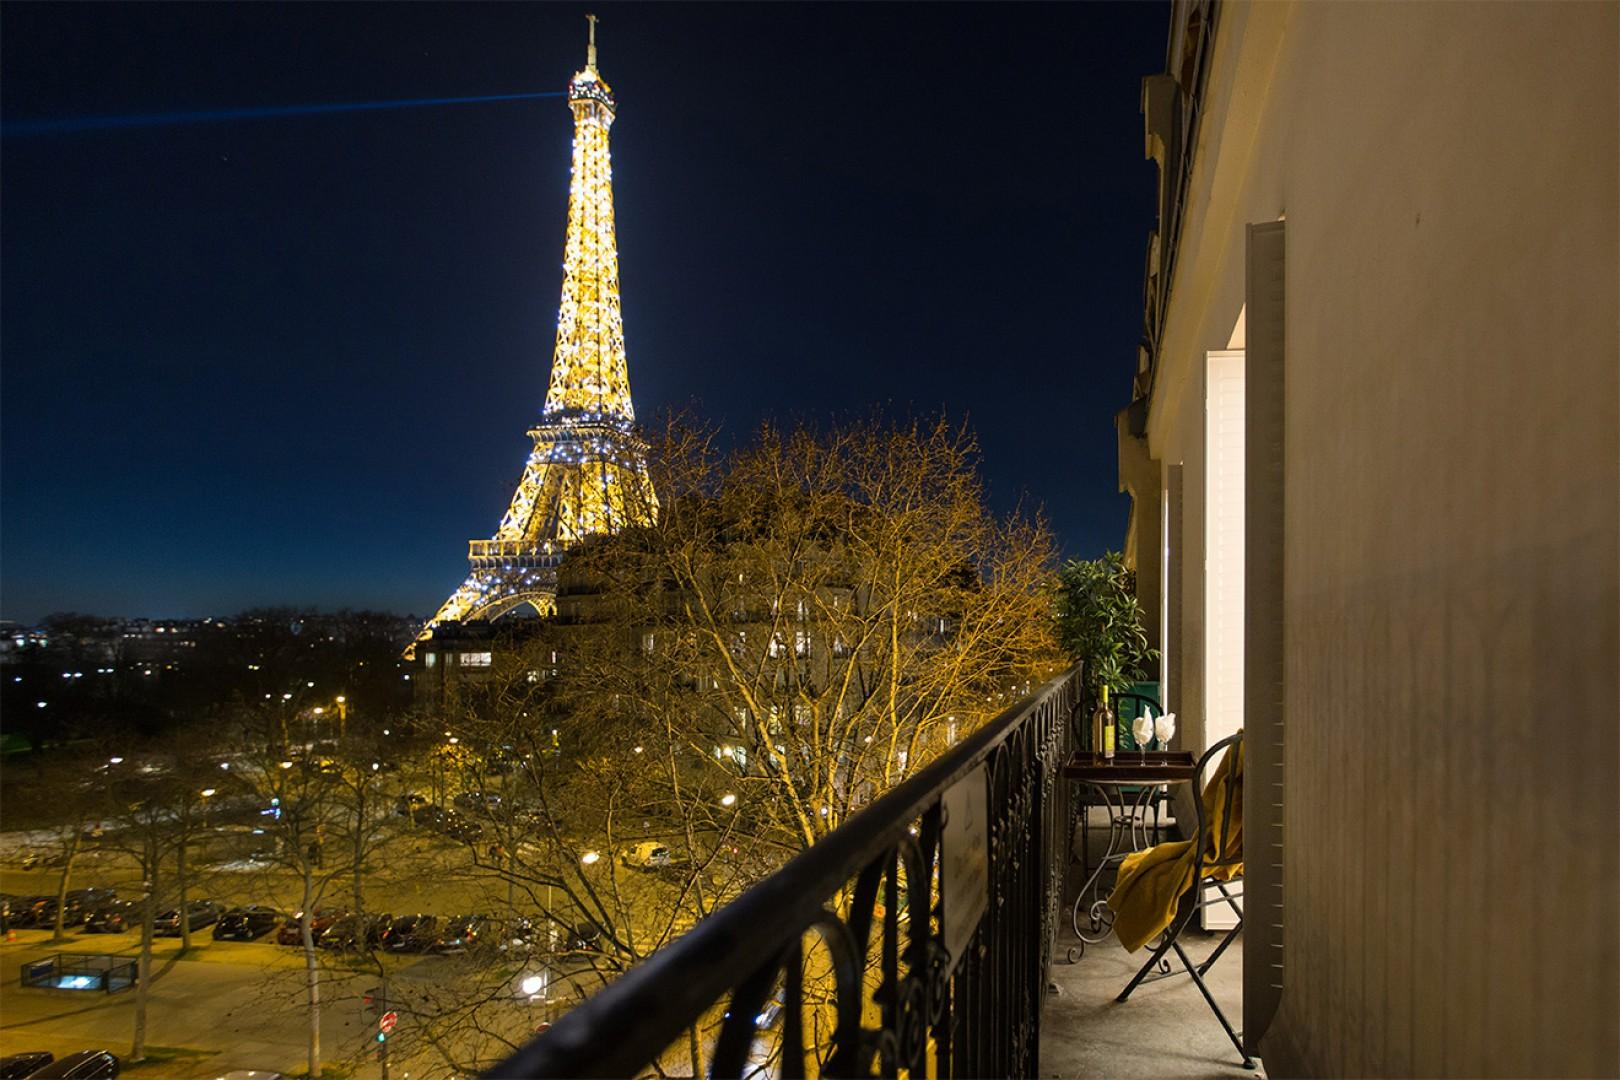 Watch the Eiffel Tower sparkle at night from your balcony!